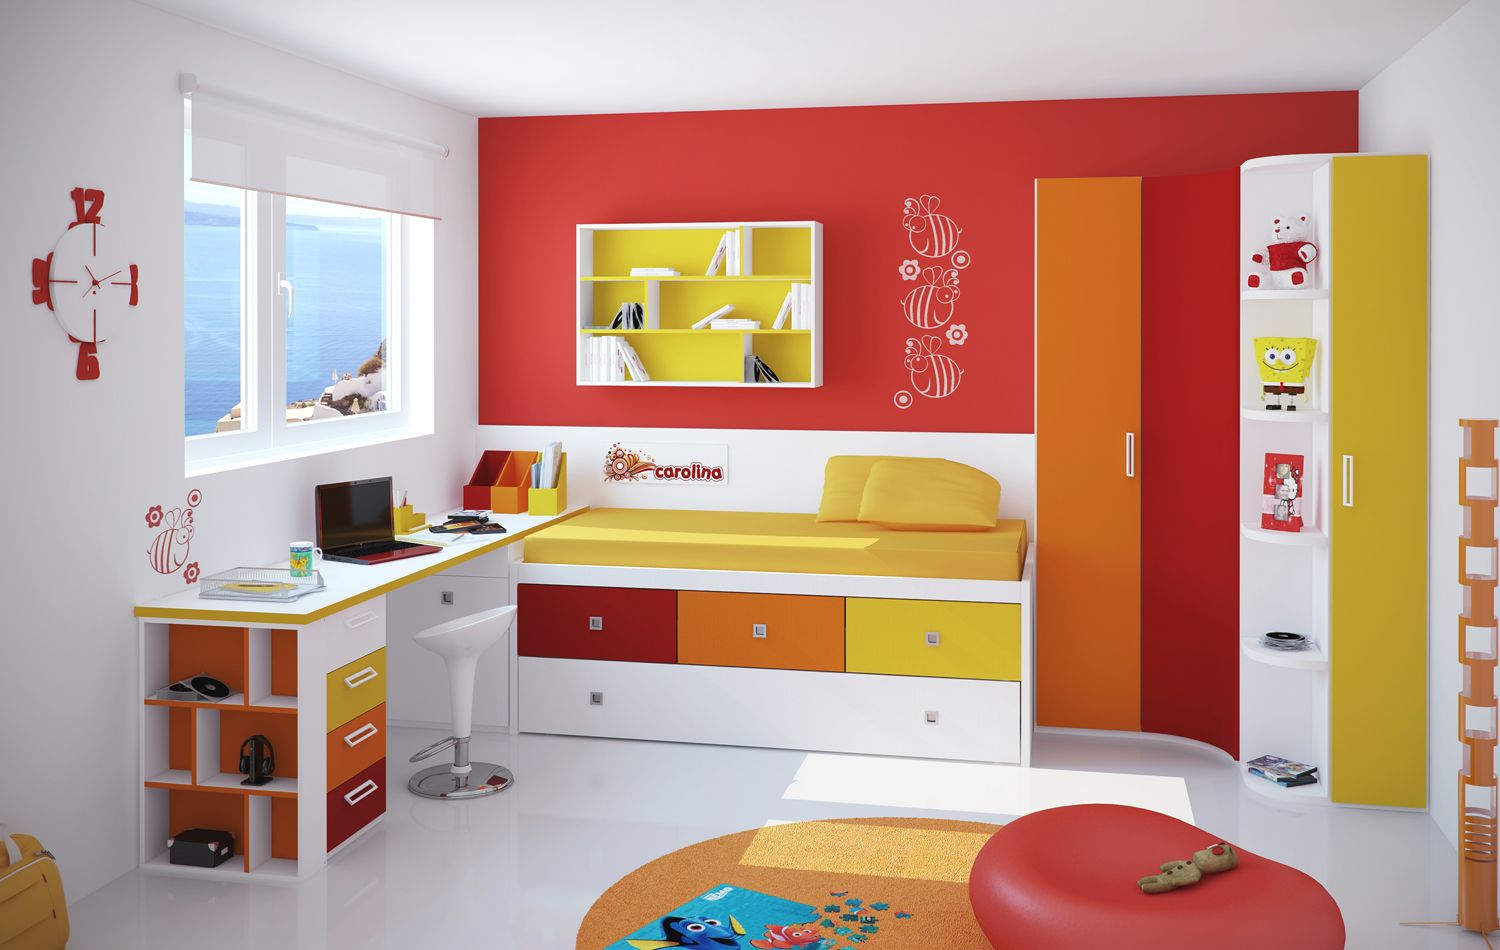 Rooms For Young Creative People Kids Room Furniture Small Room Design Modern Kids Bedroom